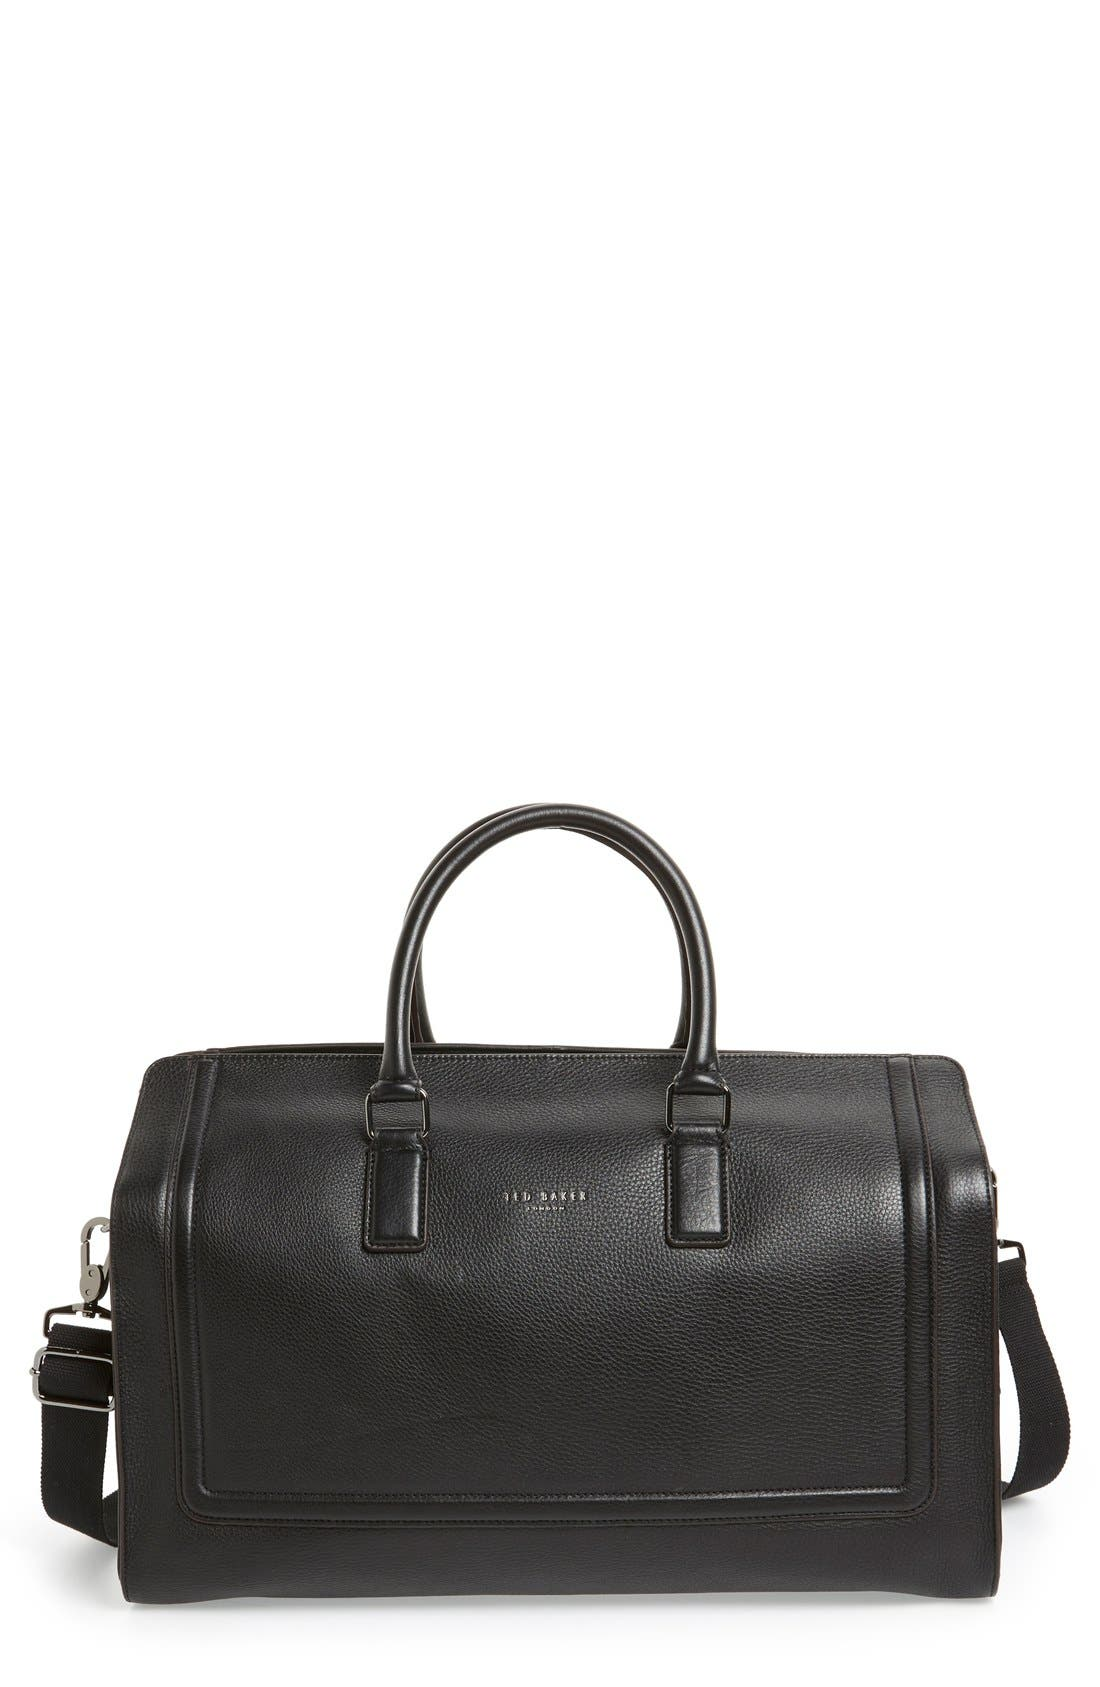 Alternate Image 1 Selected - Ted Baker London 'Shalala' Leather Duffel Bag